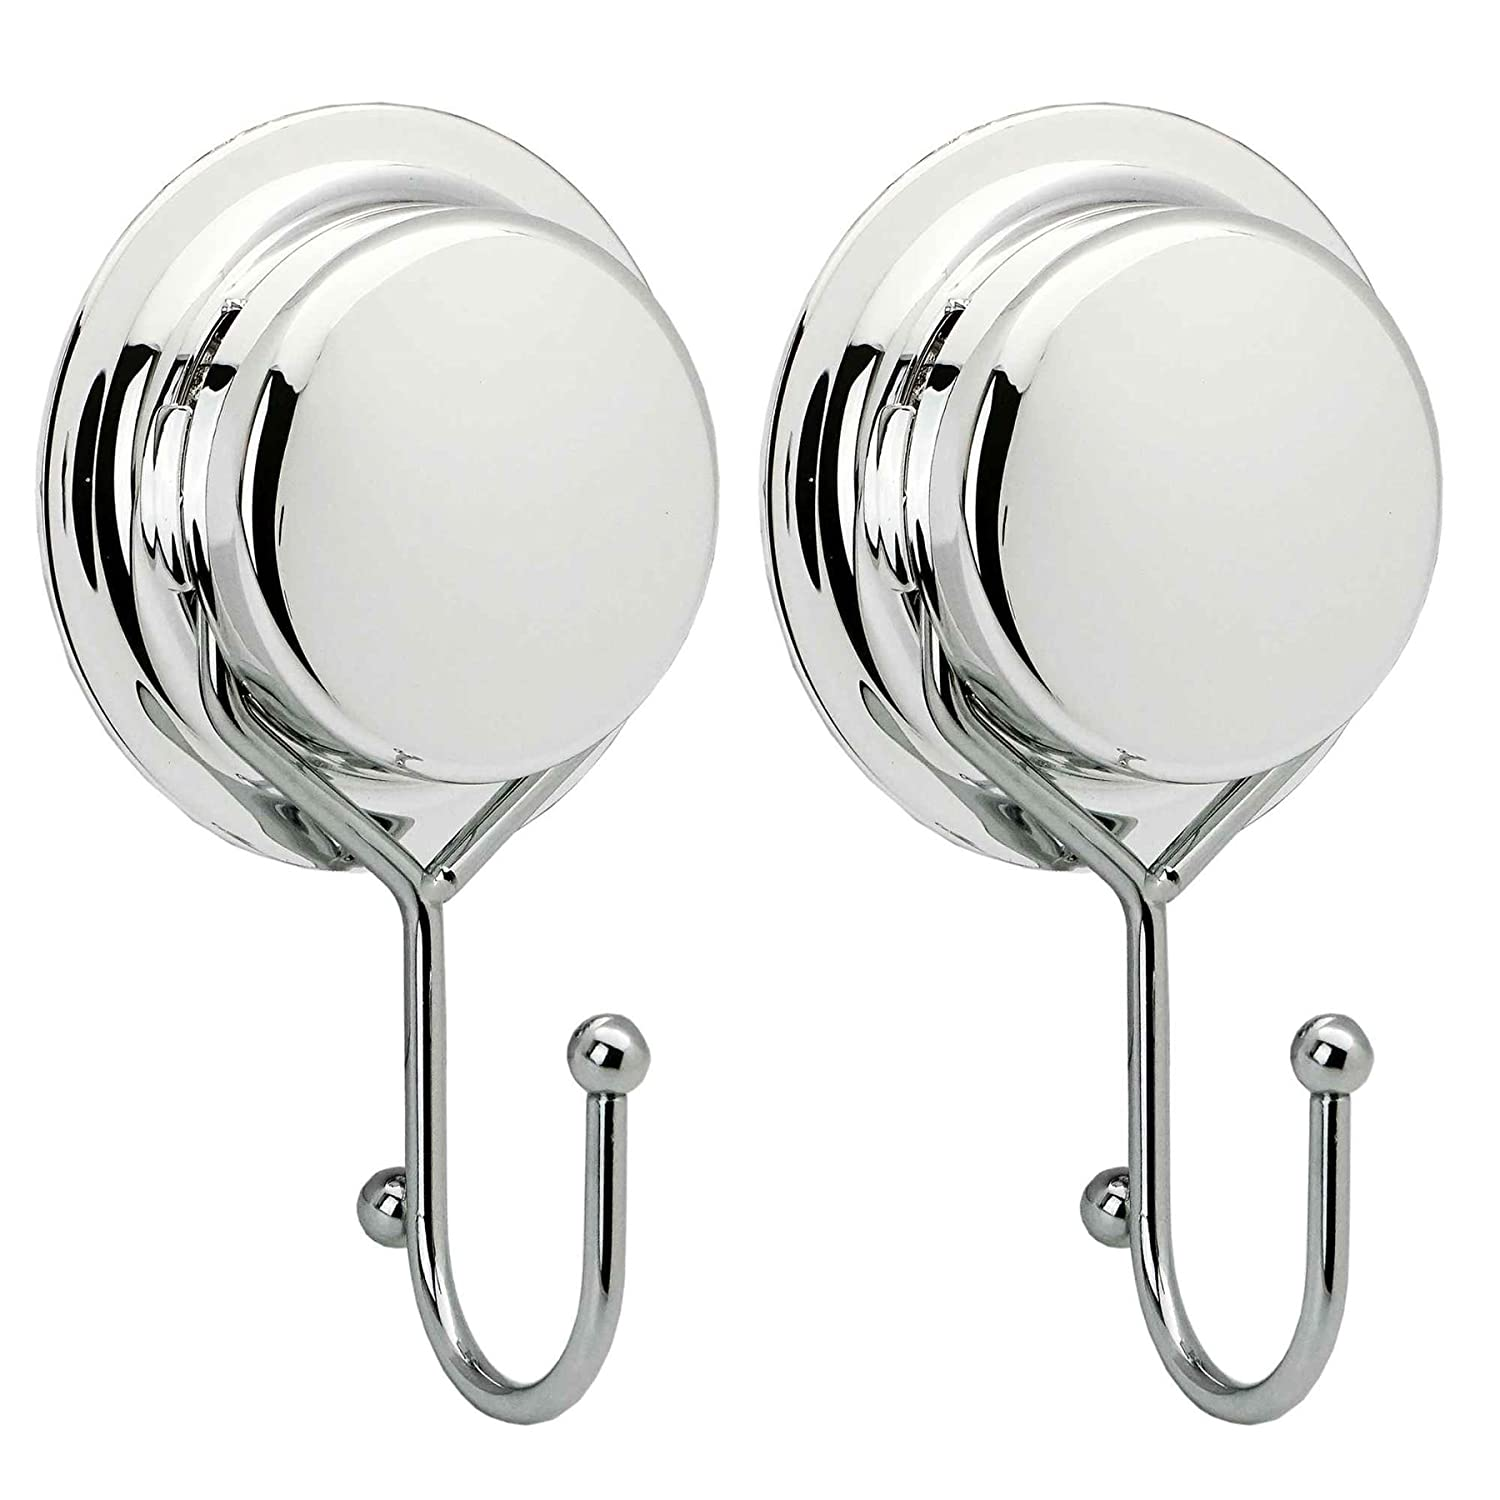 Bathroom Twist and Lock Towel Dressing Gown Vacuum Suction Cup Hanging Hook - Silver - Pack of 2 Harbour Housewares